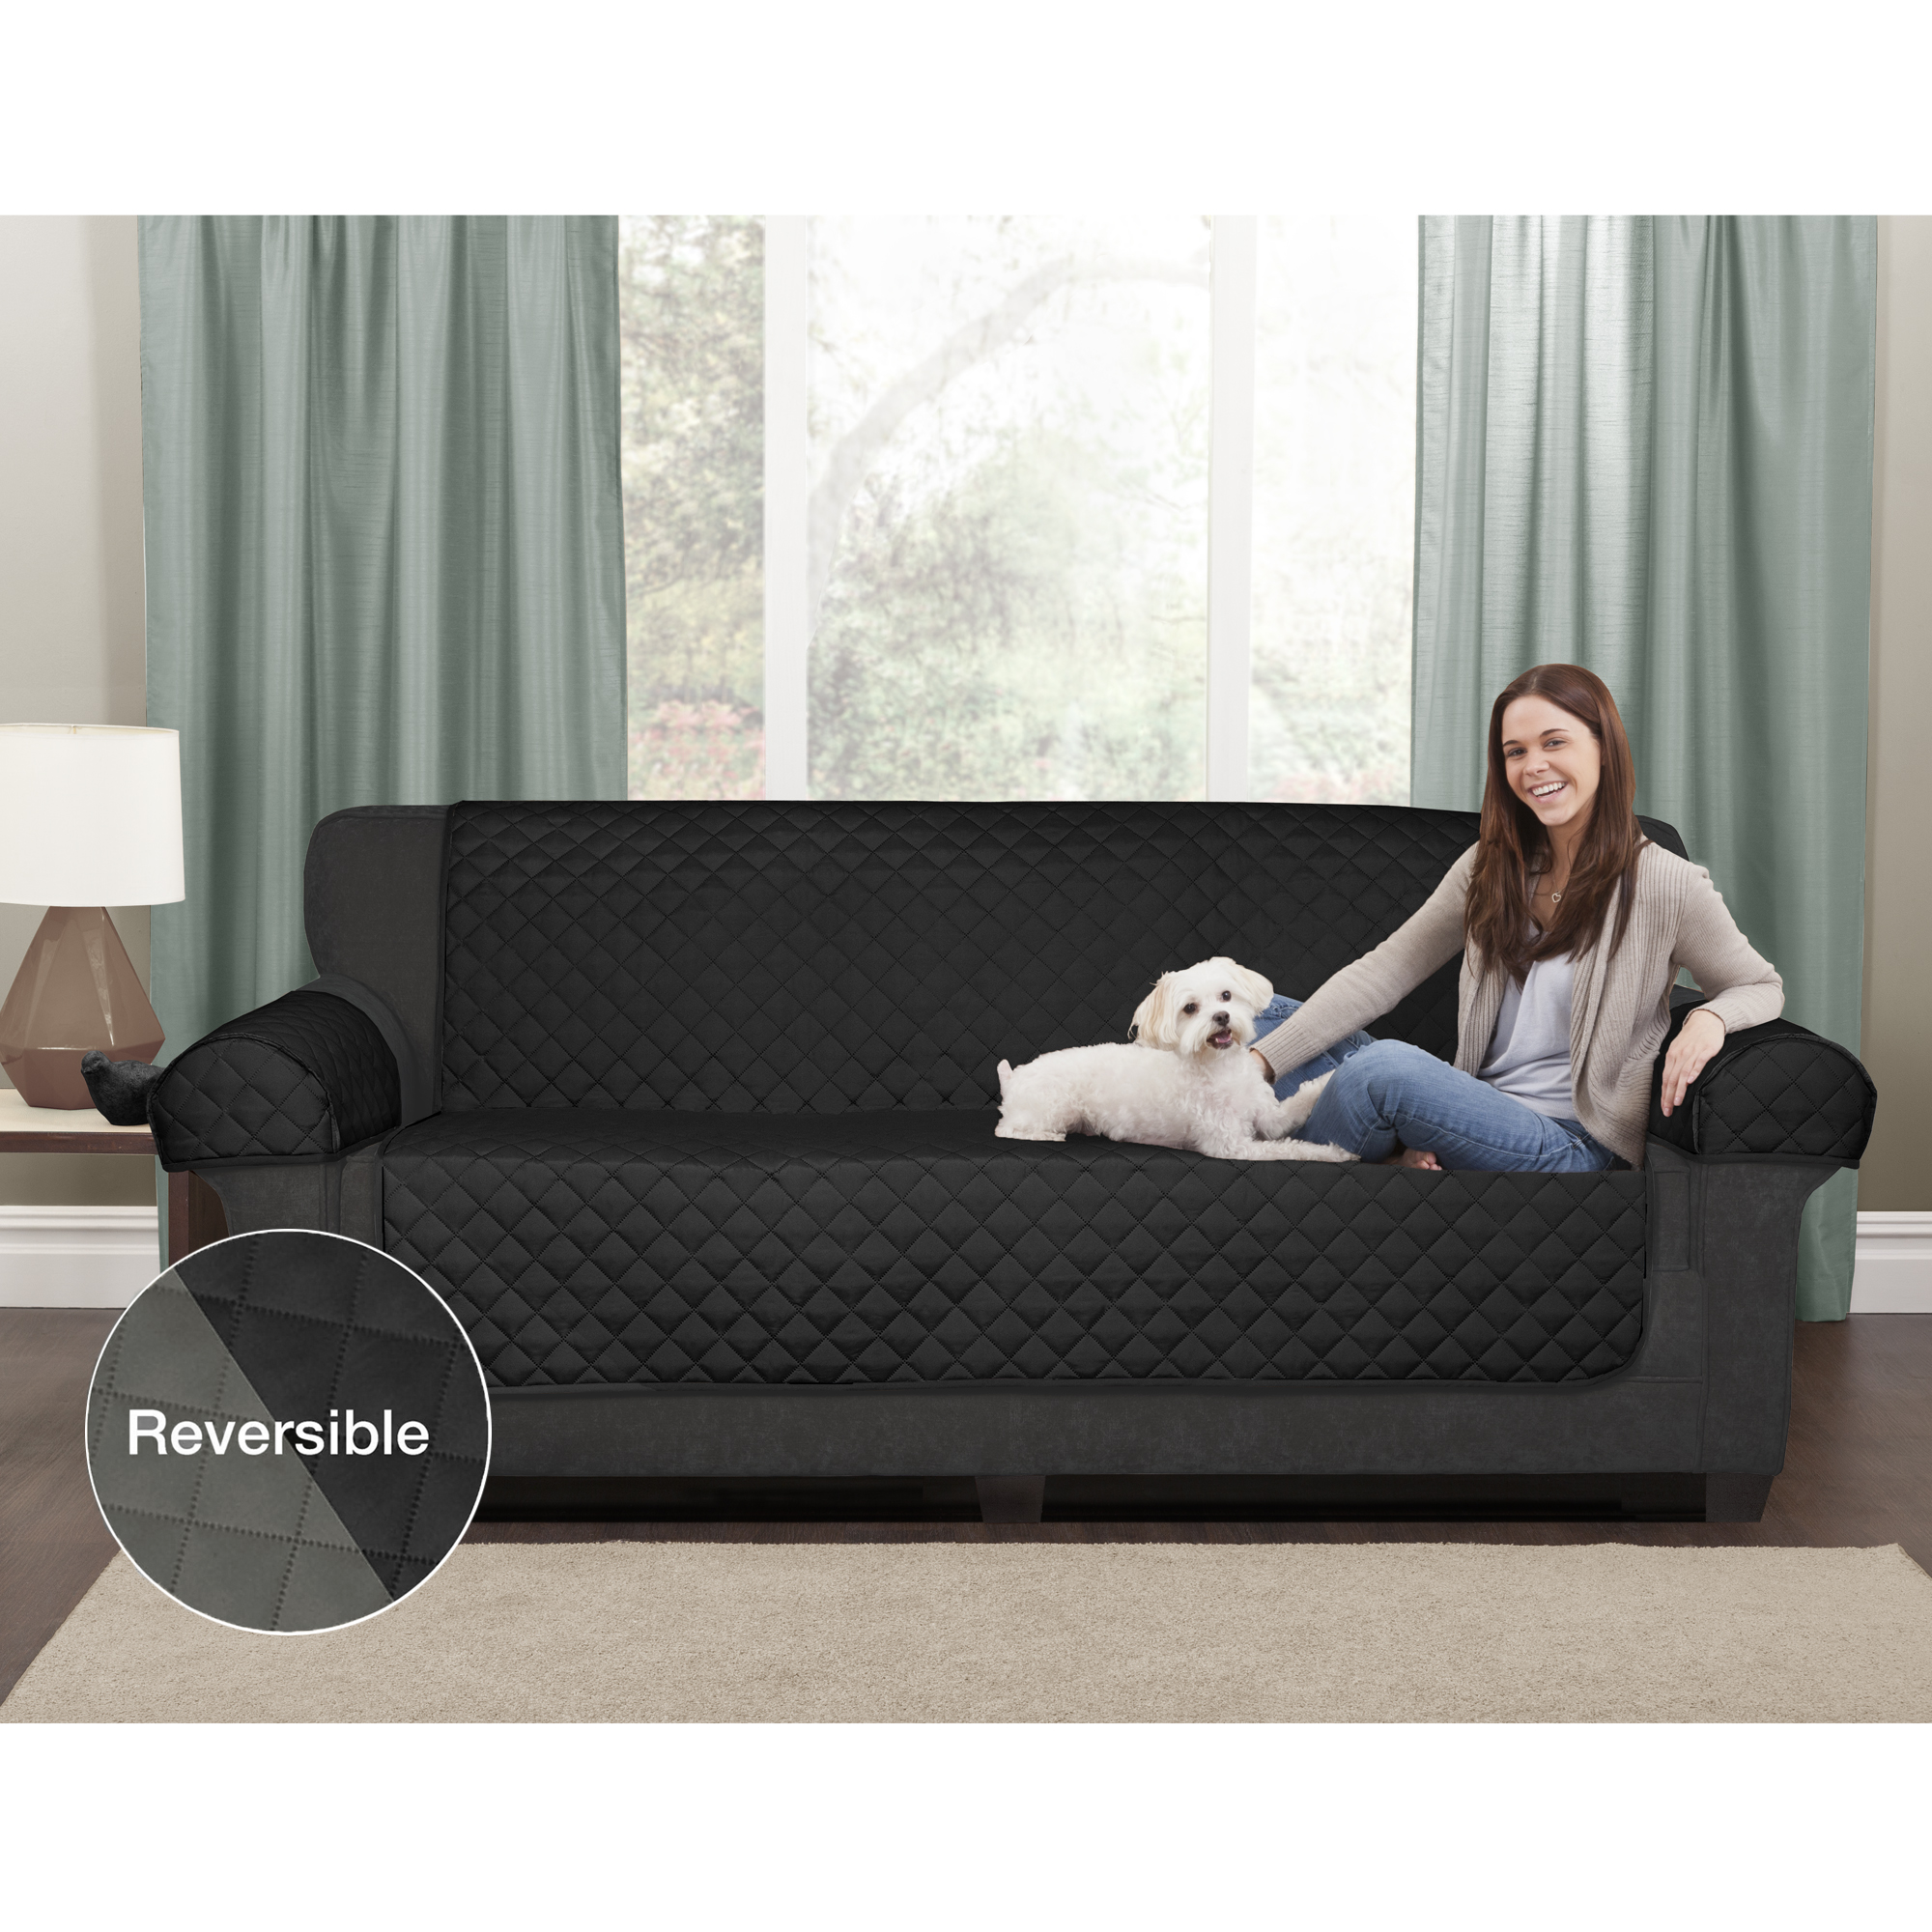 Sofas And Stuff Reviews Mainstays Reversible Microfiber 3 Piece Sofa Furniture Cover Protector